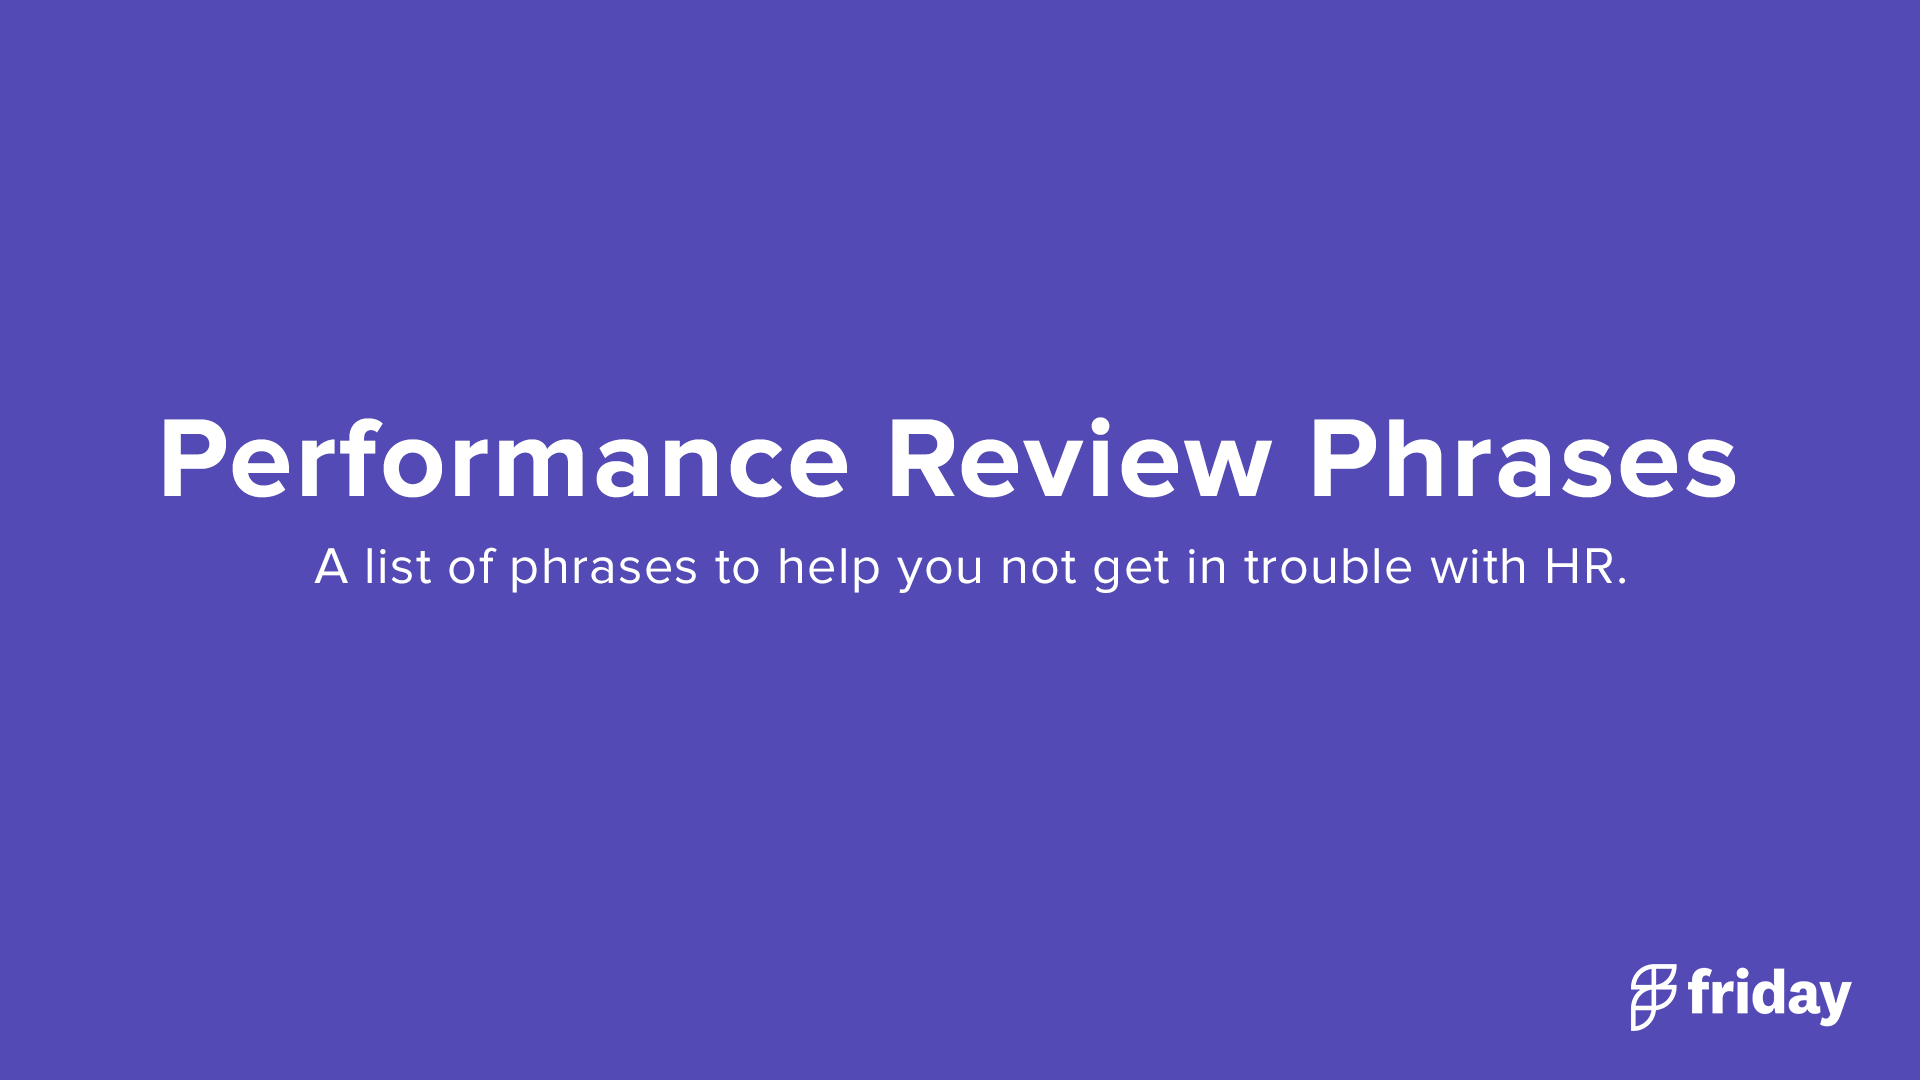 Performance Review Phrases.